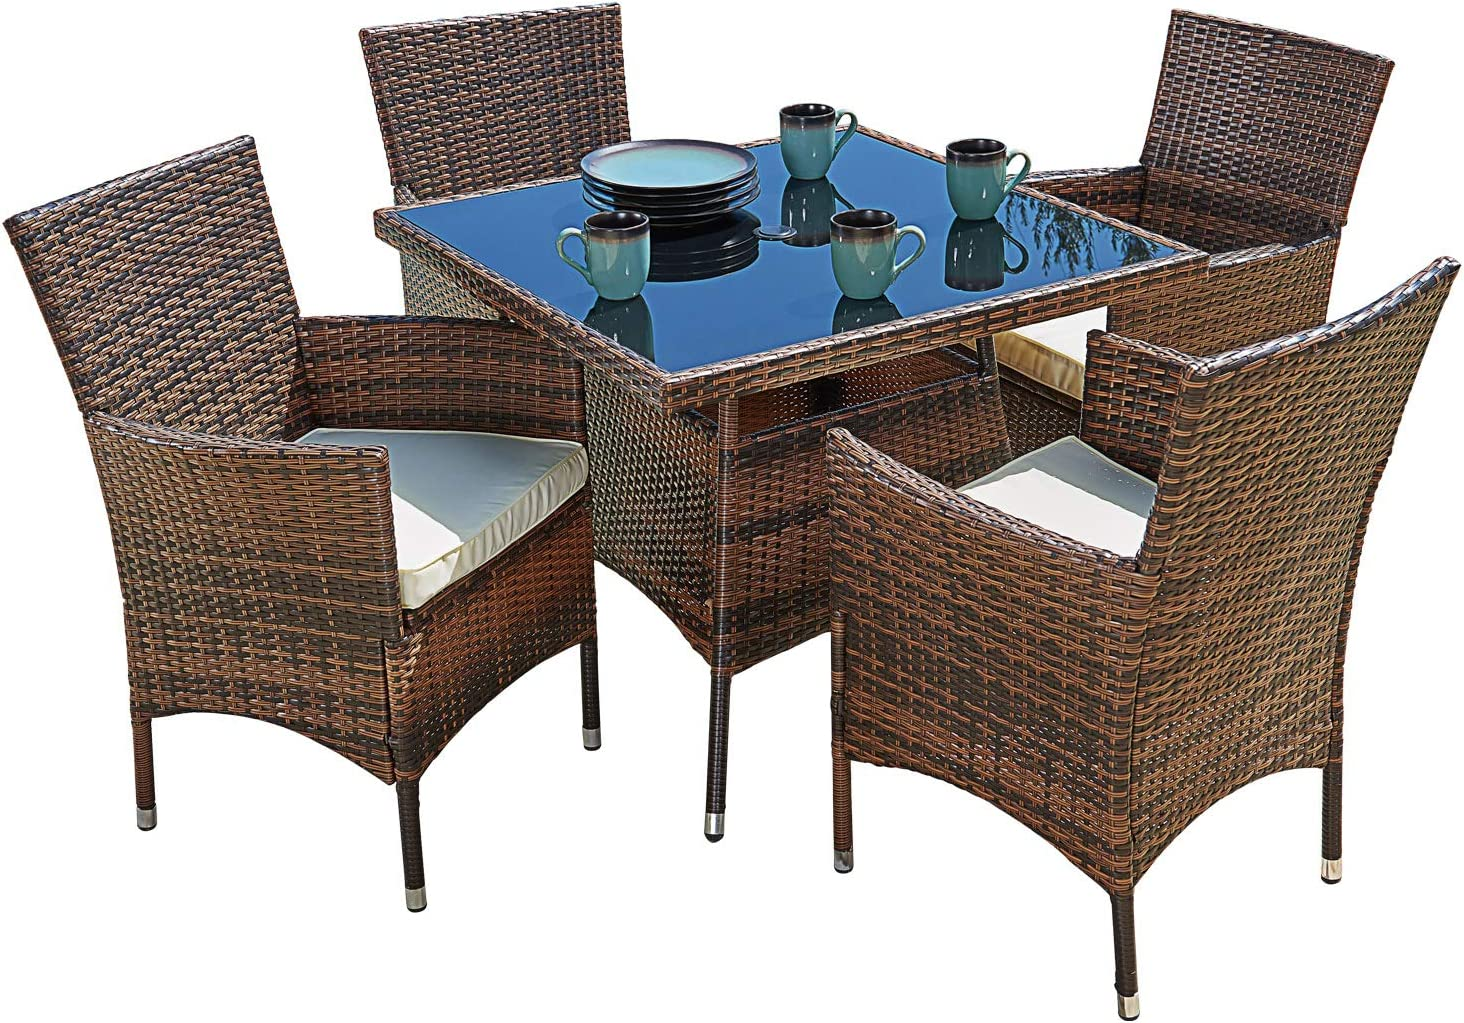 Suncrown Outdoor Furniture All Weather Square Wicker Dining Table And Chairs 5 Piece Set Washable Cushions Patio Backyard Porch Garden Poolside Tempered Glass Tabletop Modern Design Garden Outdoor